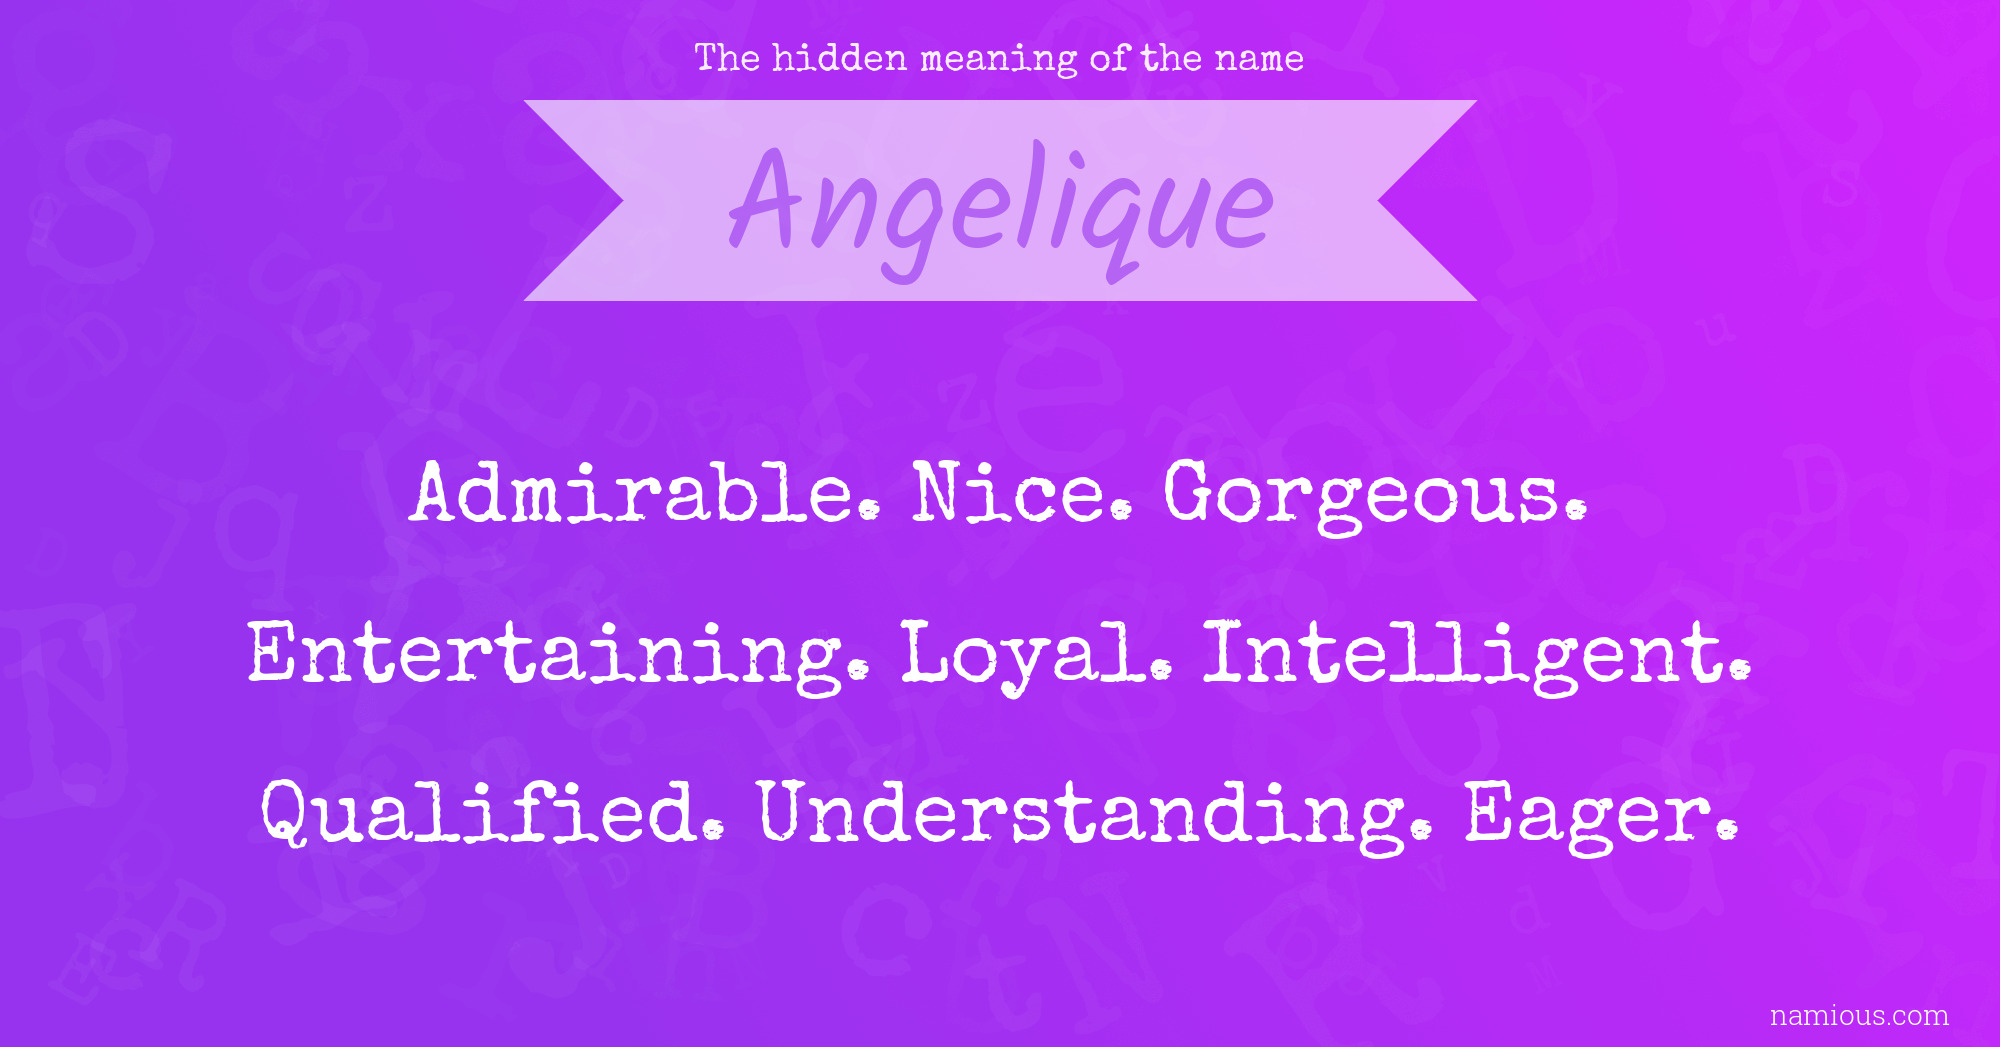 The hidden meaning of the name Angelique | Namious